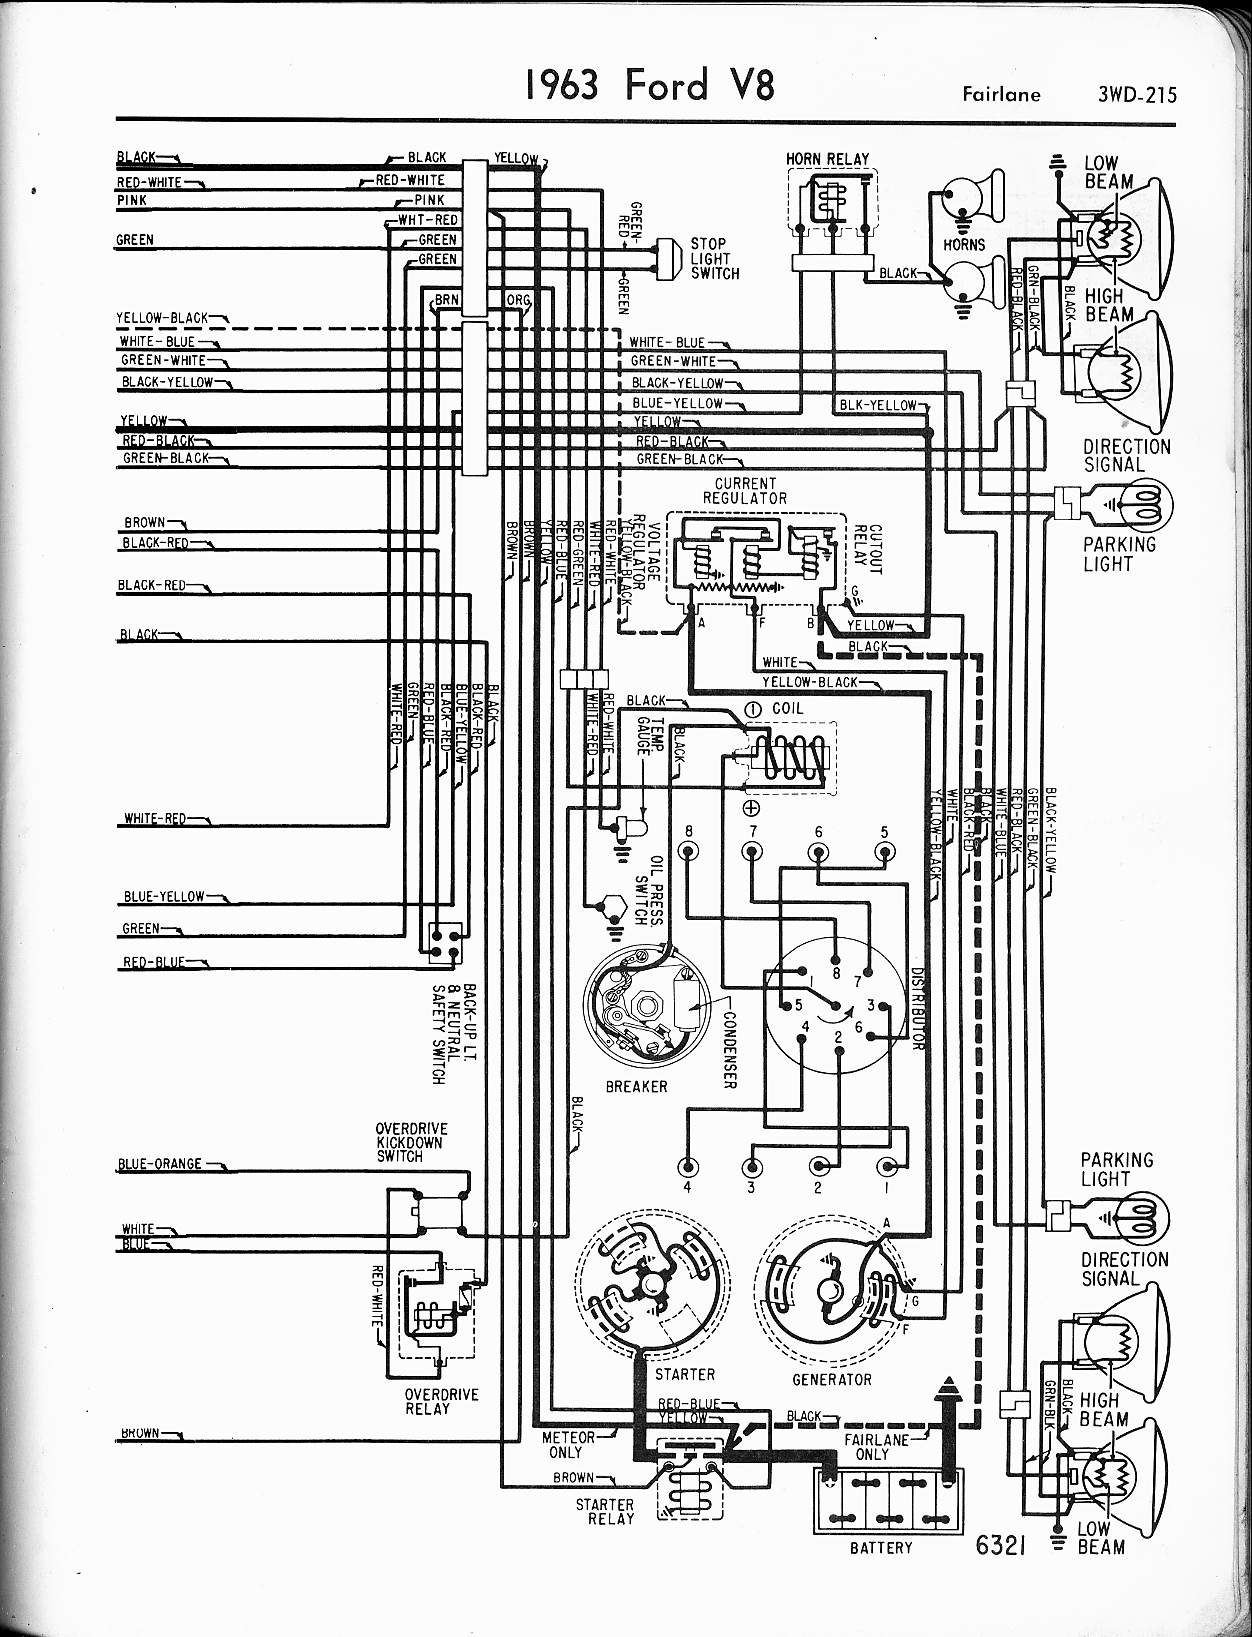 1963 ford econoline wiring diagram - wiring diagram book agency-stage -  agency-stage.prolocoisoletremiti.it  prolocoisoletremiti.it